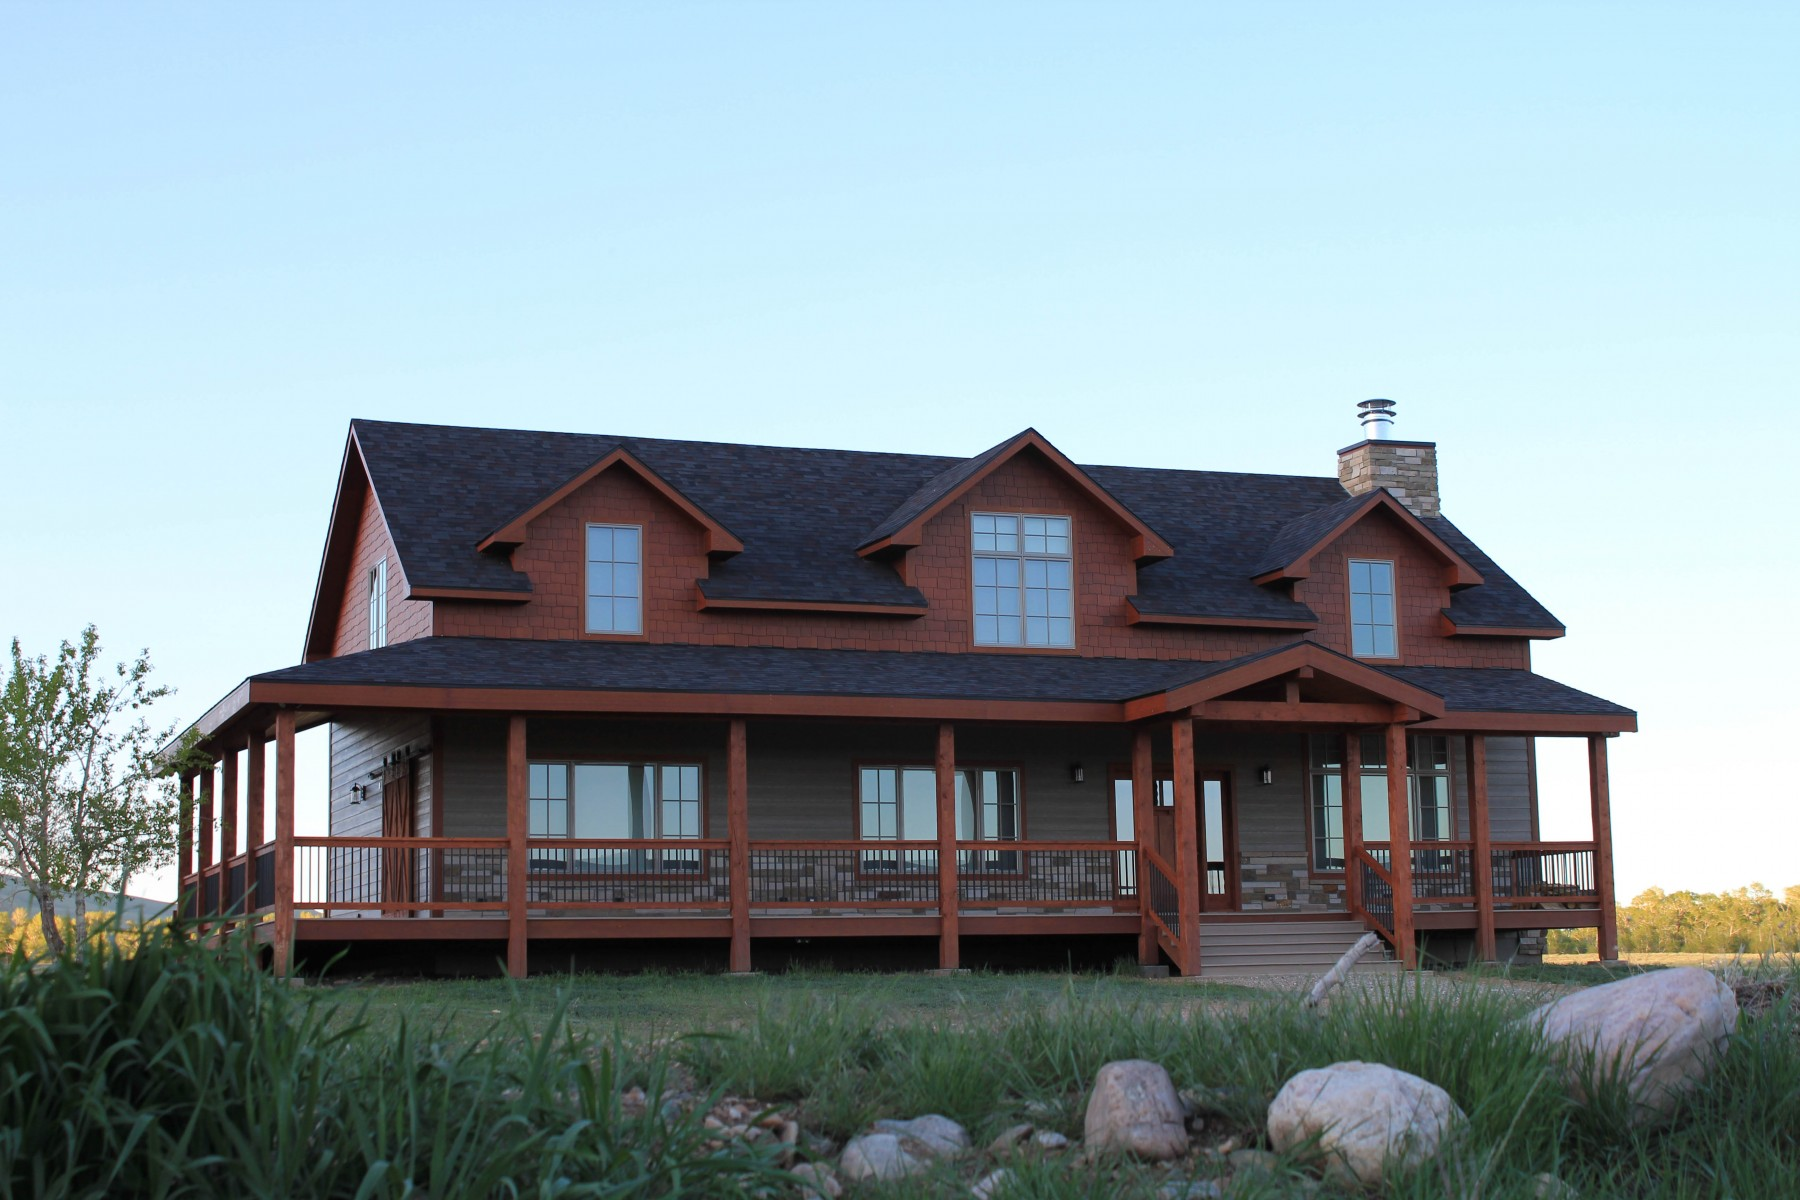 Sper conventional hybrid timber frame accents Centennial Wyoming custom home builder (6) - Deerwood Log Homes - Custom Built Homes and Cabins - Laramie, Wyoming and The Centennial Valley - deer-wood.com - (307) 742-6554